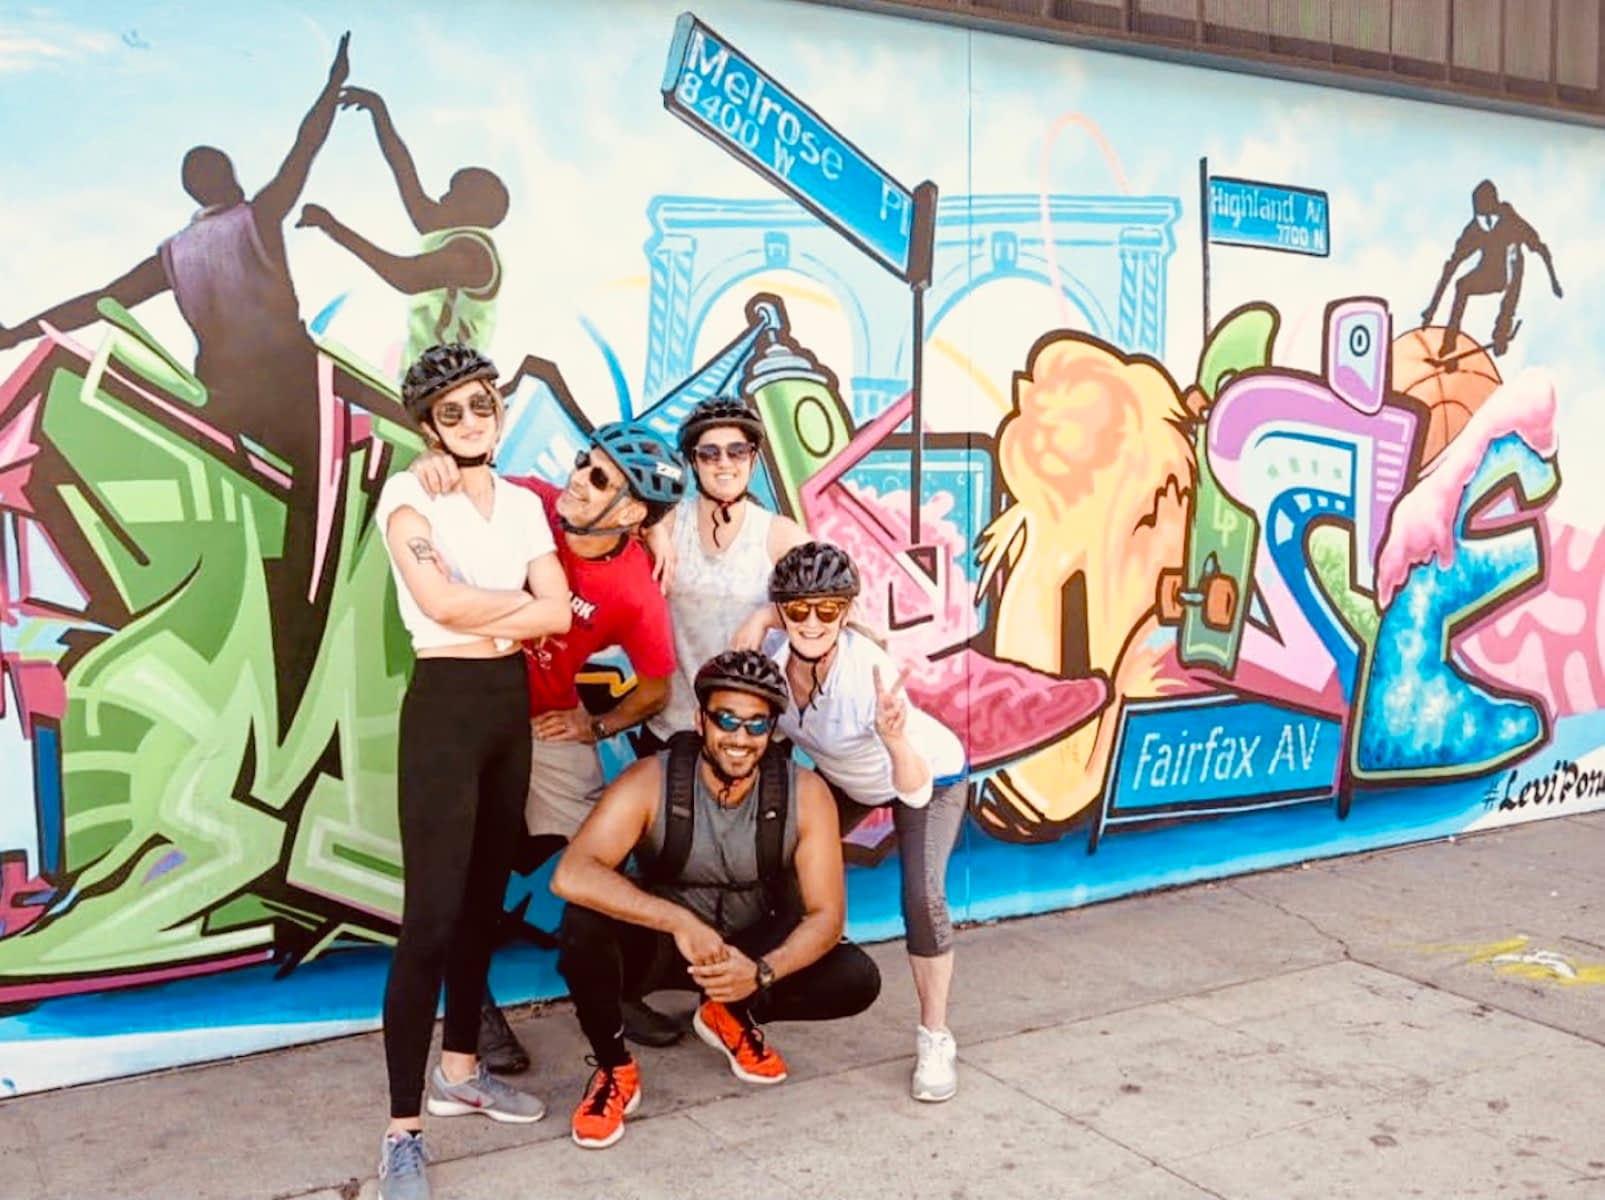 a photo of five people wearing sunglasses and bike helmets posing next to a mural of los angeles